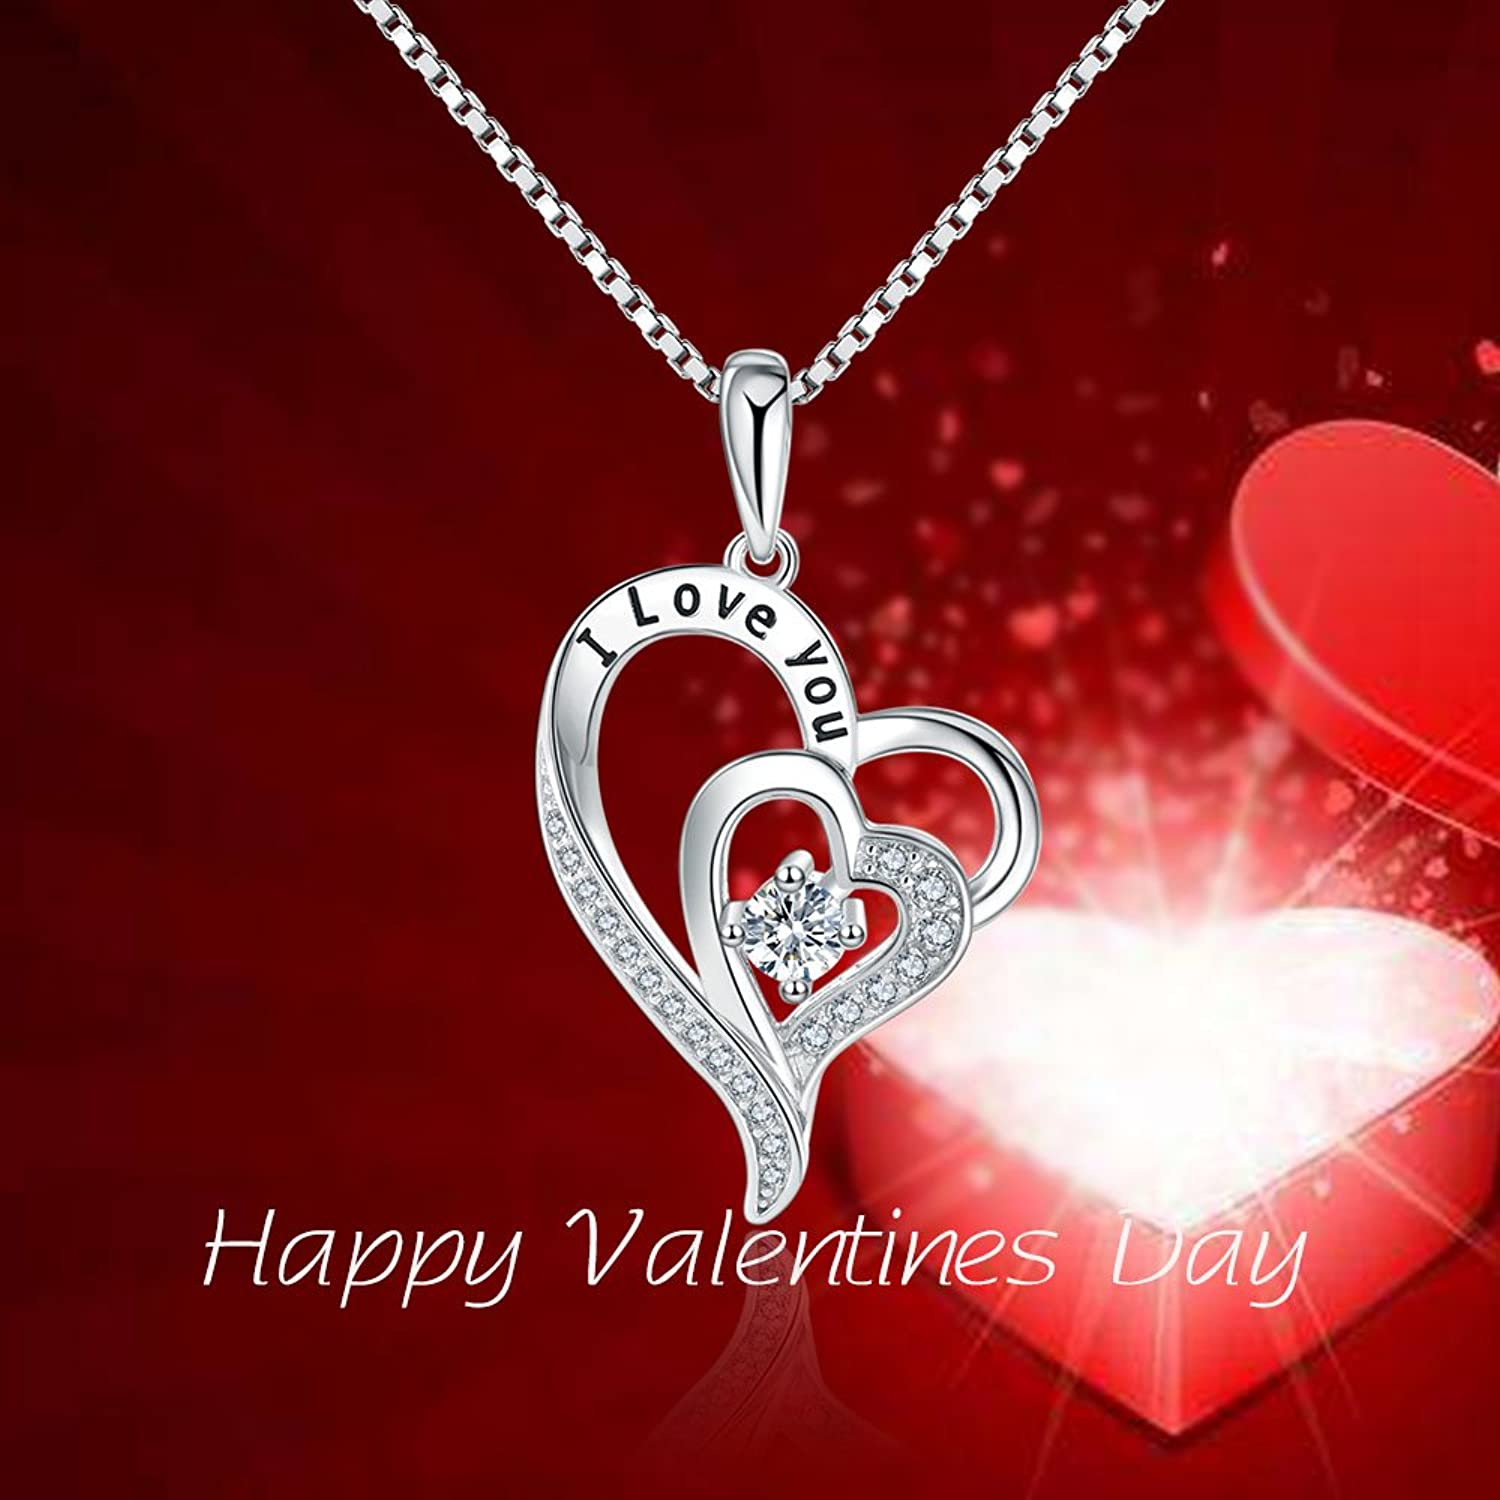 gifts valentines the elements dp caperci ref com ts moon and heart i pendant pd day zg crystal with necklace rss for amazon jewelry jw swarovski love her to you back